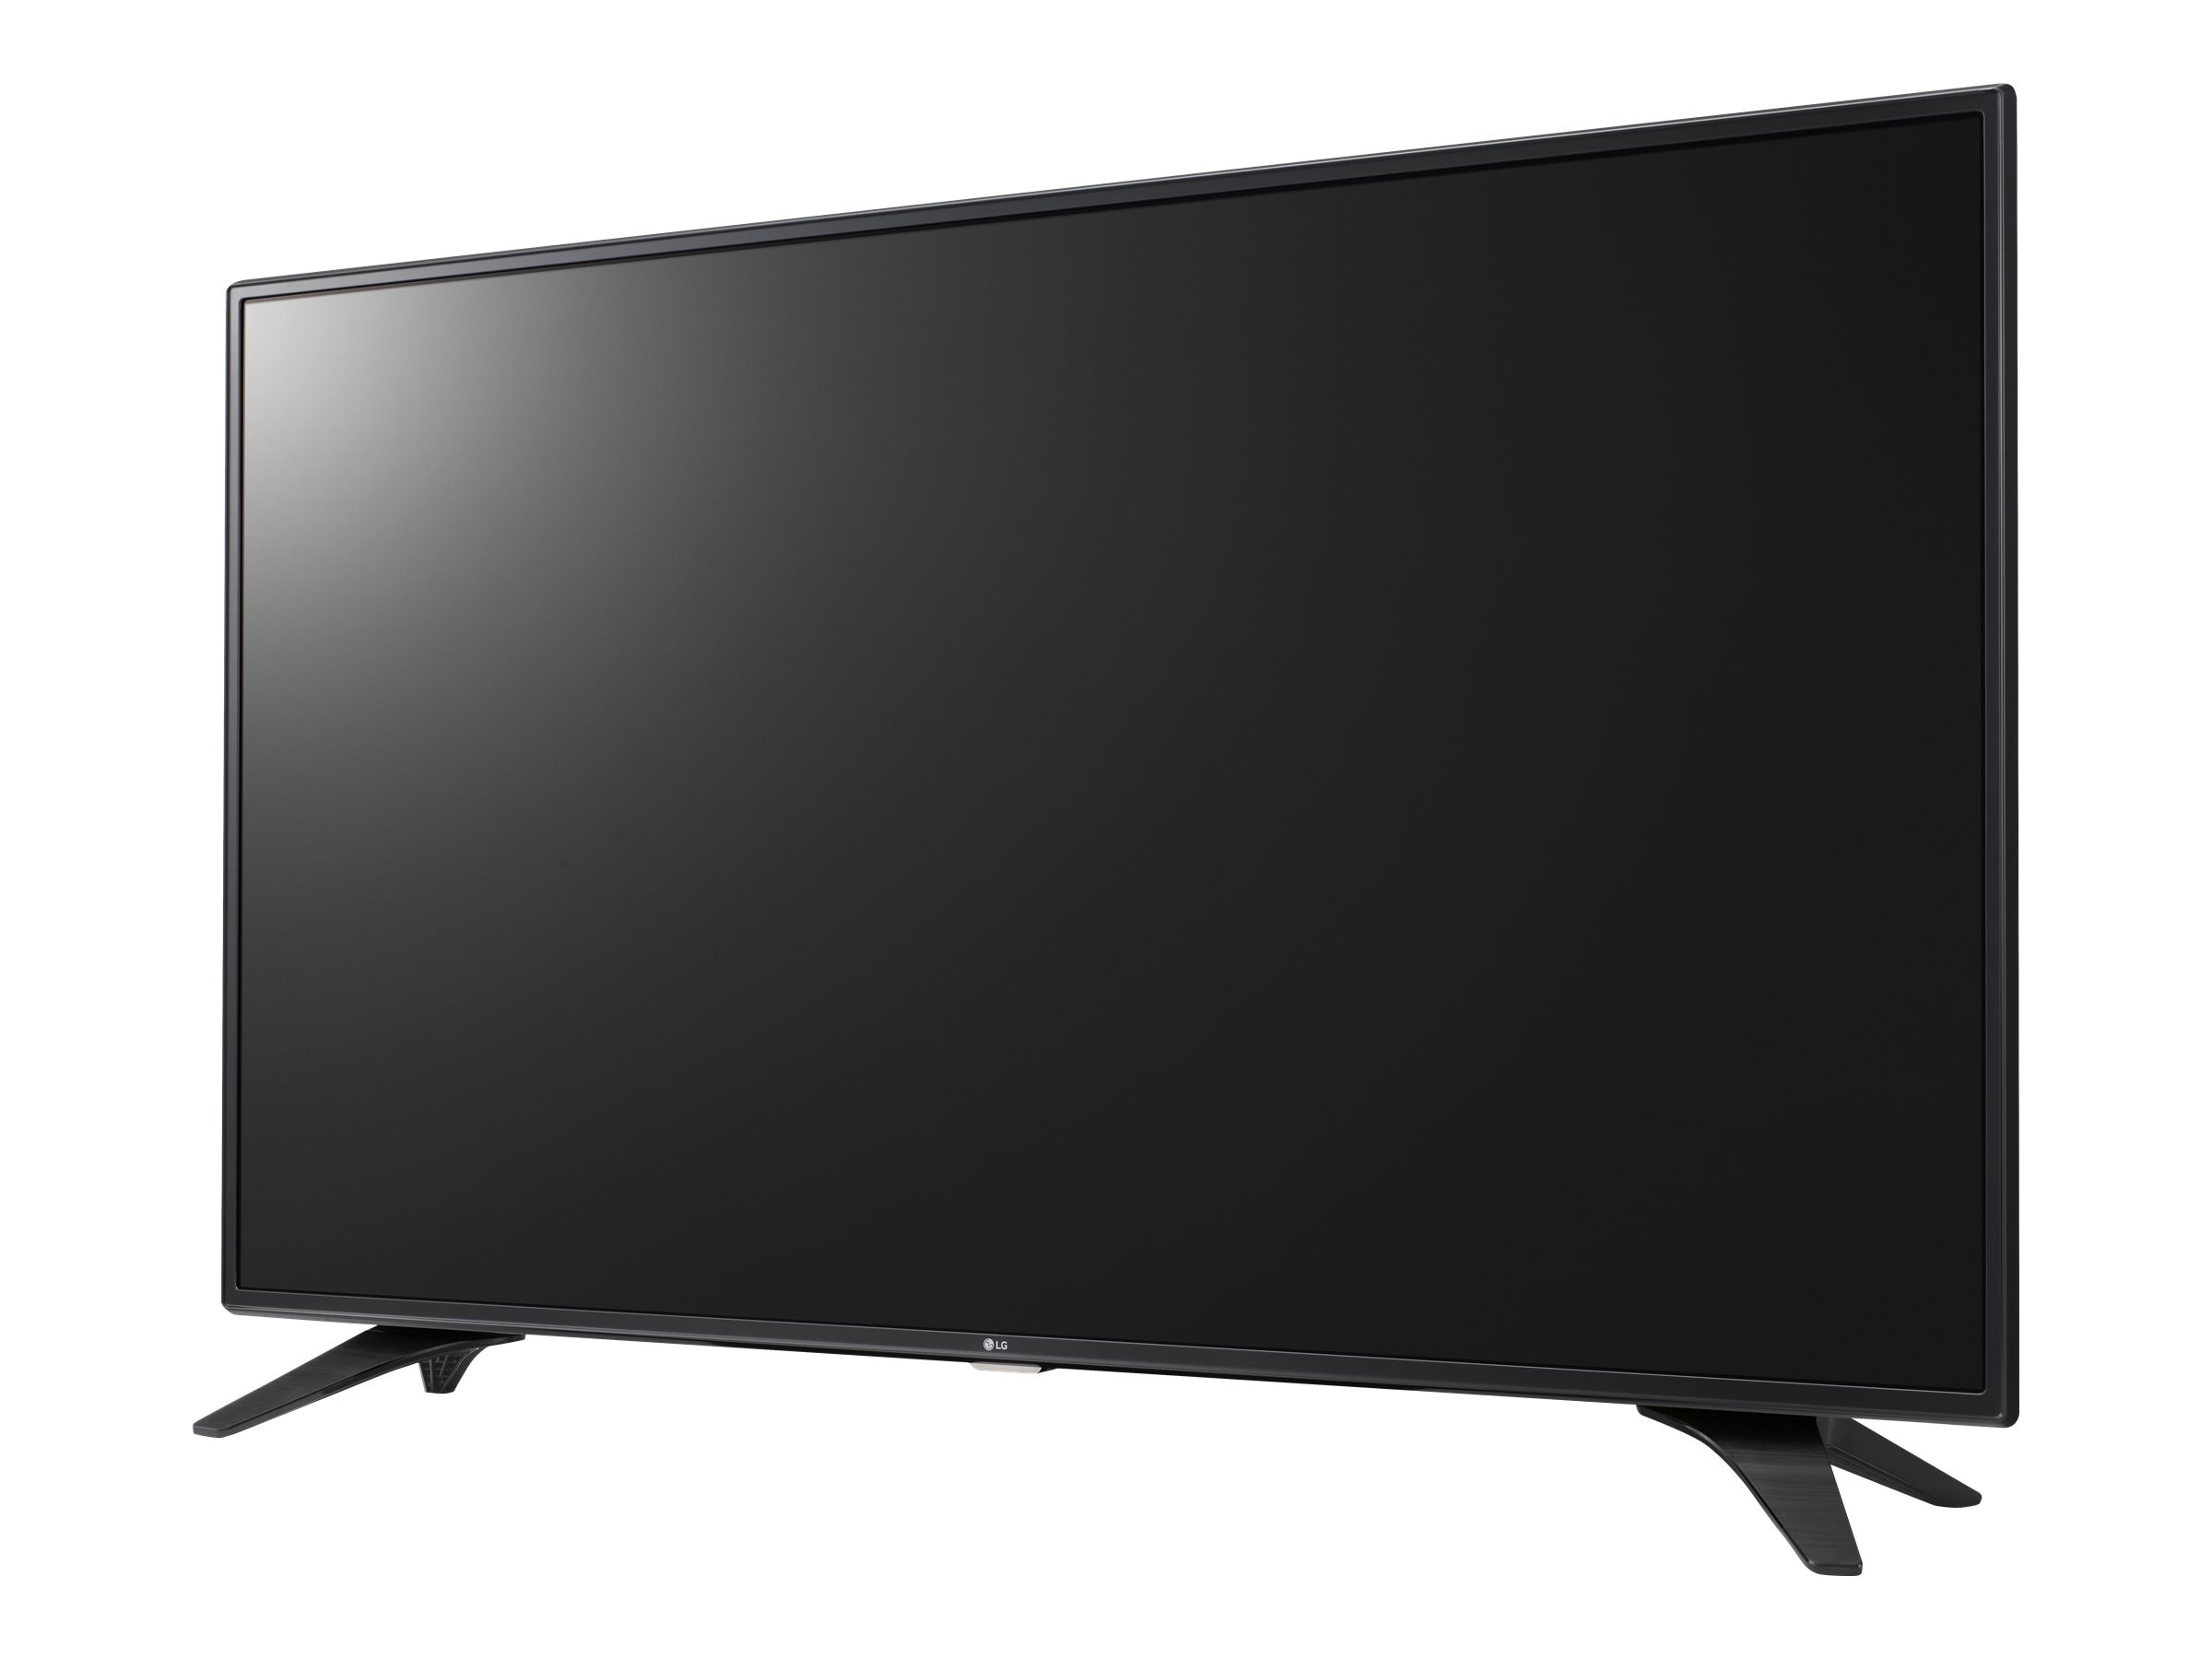 LG 49 LW540S Full HD LED-LCD TV, Black, 49LW540S